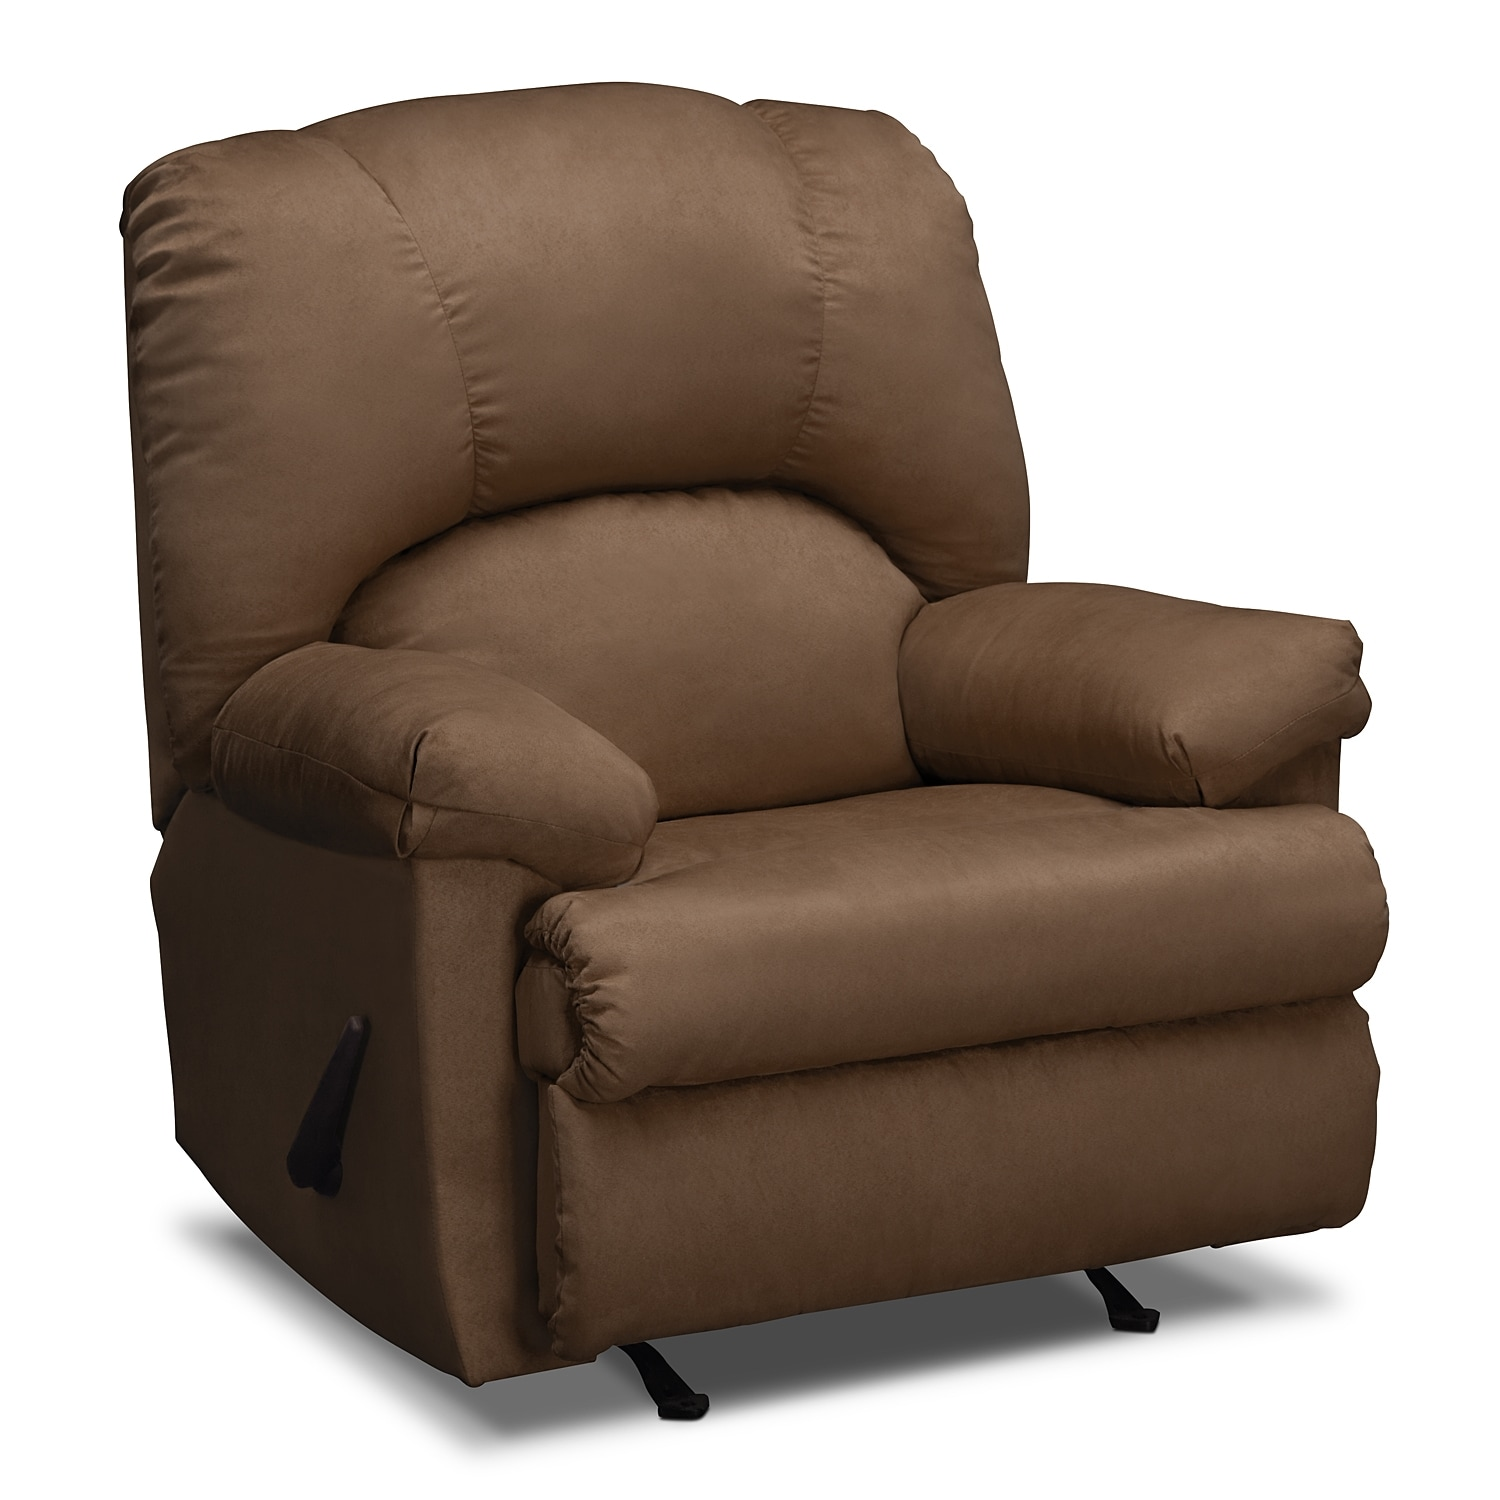 Sales Furniture: Quincy Rocker Recliner